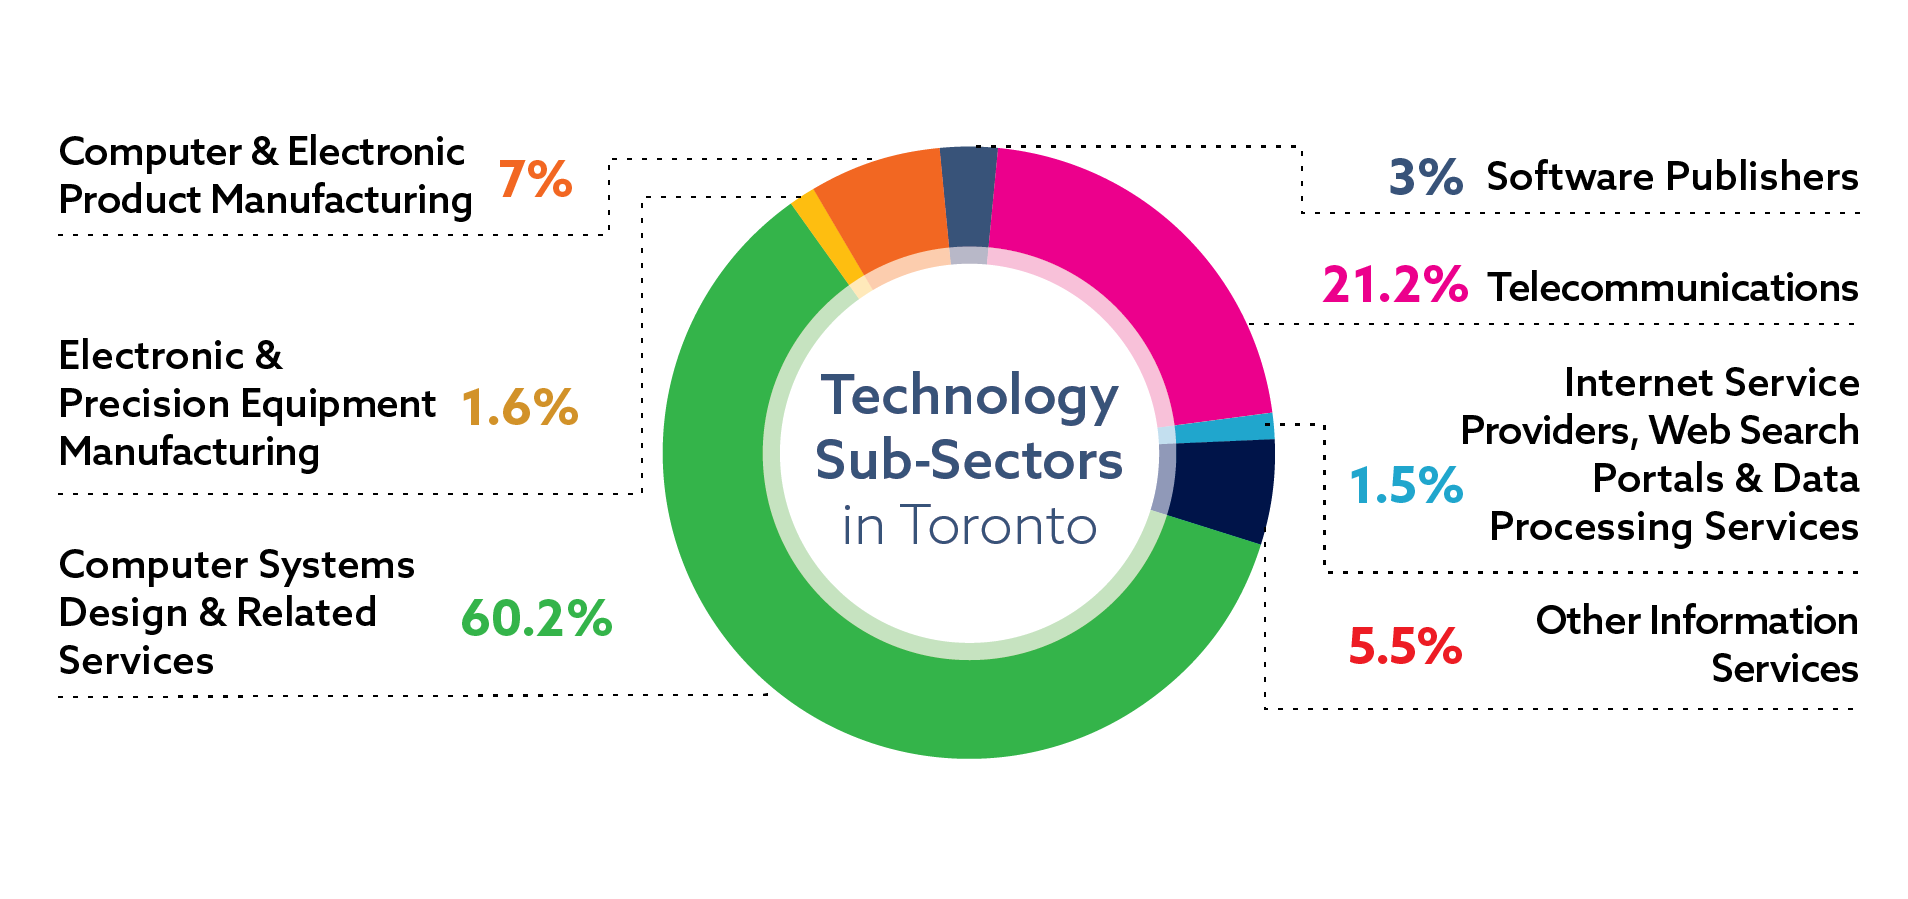 Distribution of jobs in the technology sector in Toronto, by sub-sector: computer systems design and related services 60.2 percent of sector jobs; telecommunications 21.2 percent of sector jobs; computer and electronic product manufacturing 7 percent of sector jobs; software publishers 3 percent of sector jobs; electronic and precision equipment manufacturing 1.6 percent of sector jobs; internet service providers, web search and data processing services 1.5 percent of sector jobs